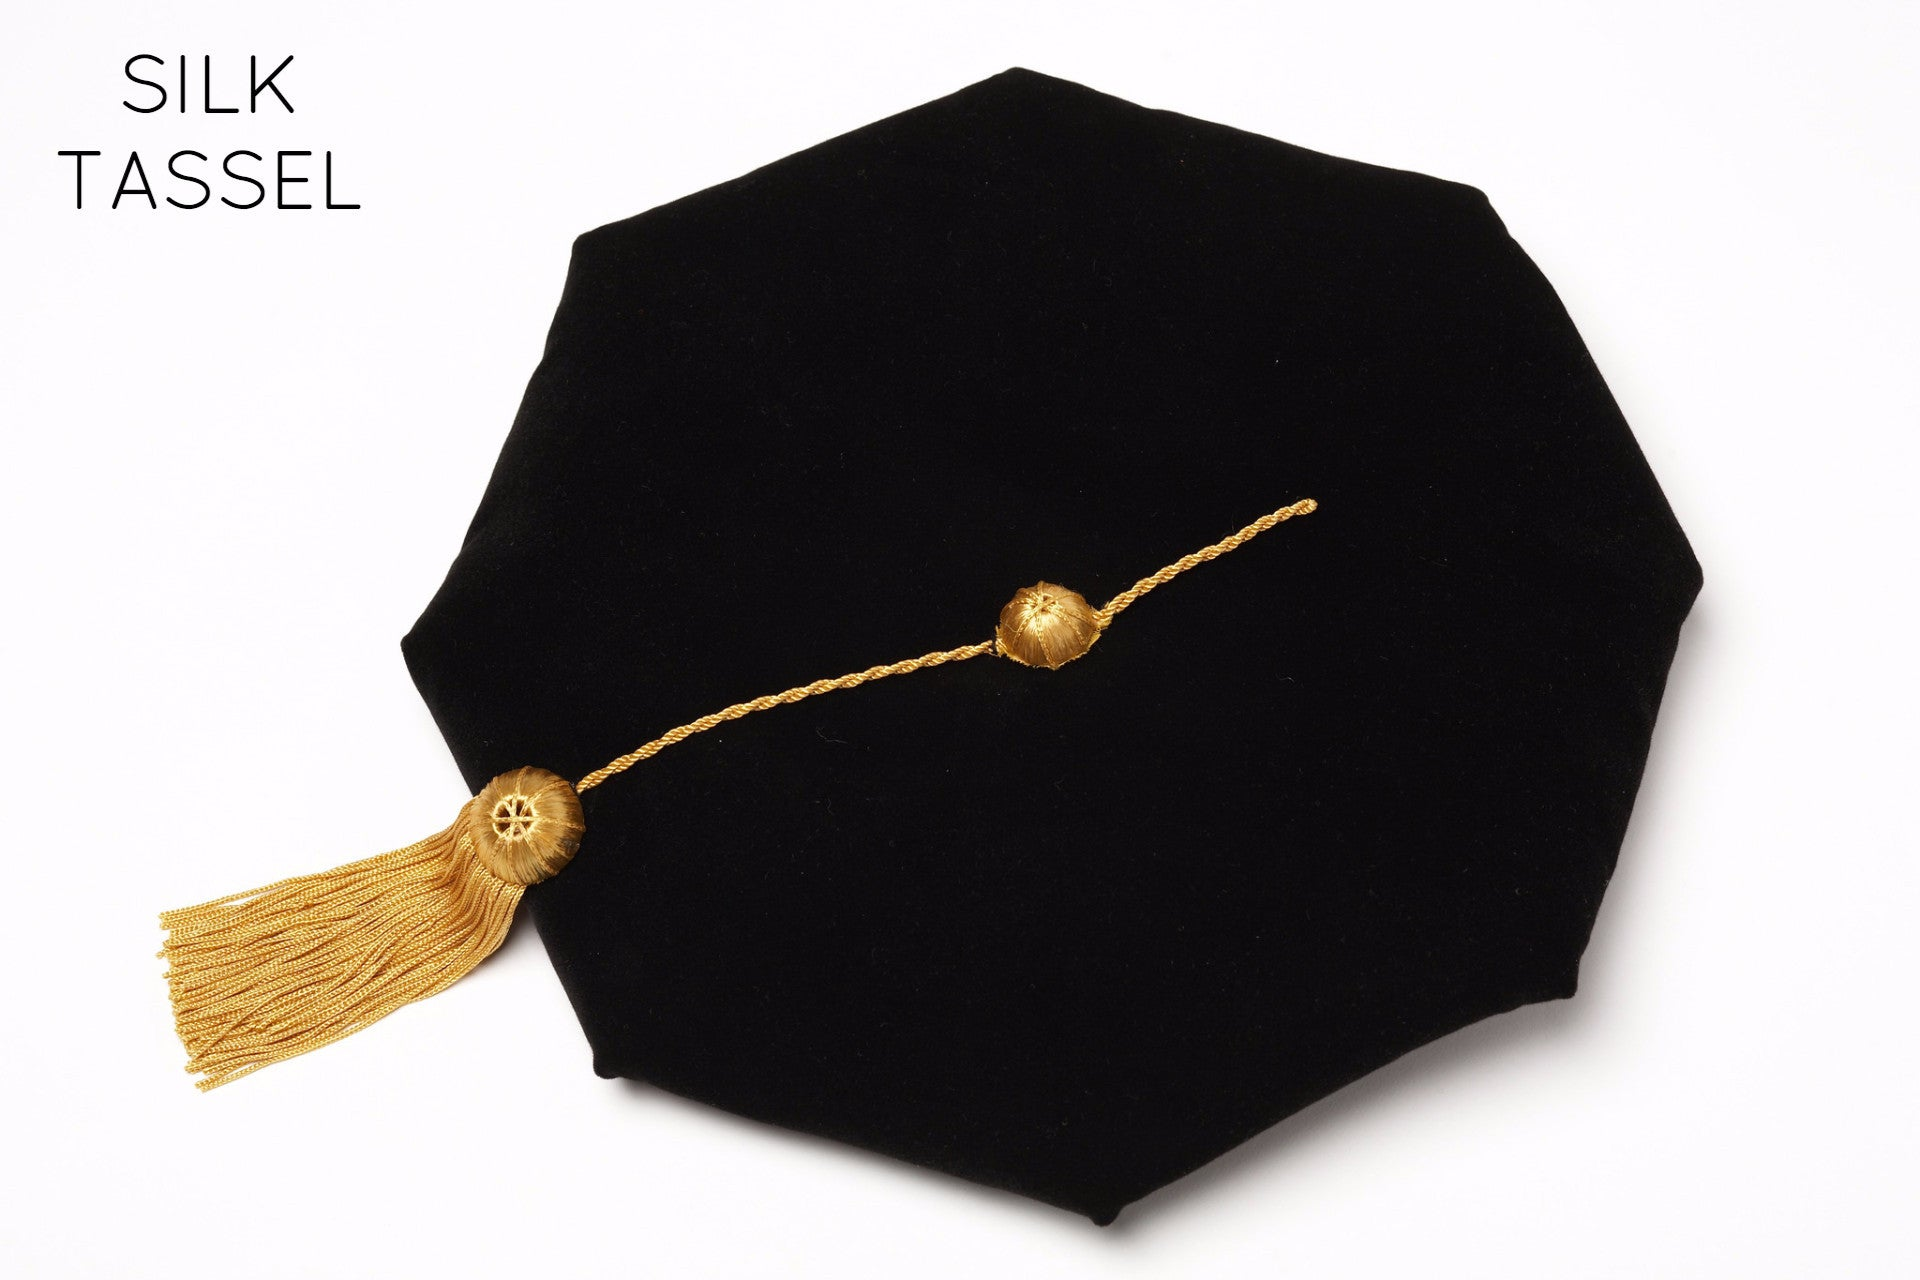 Stanford Complete Doctoral Regalia Rental - Velvet Cap with Yellow Silk Tassel